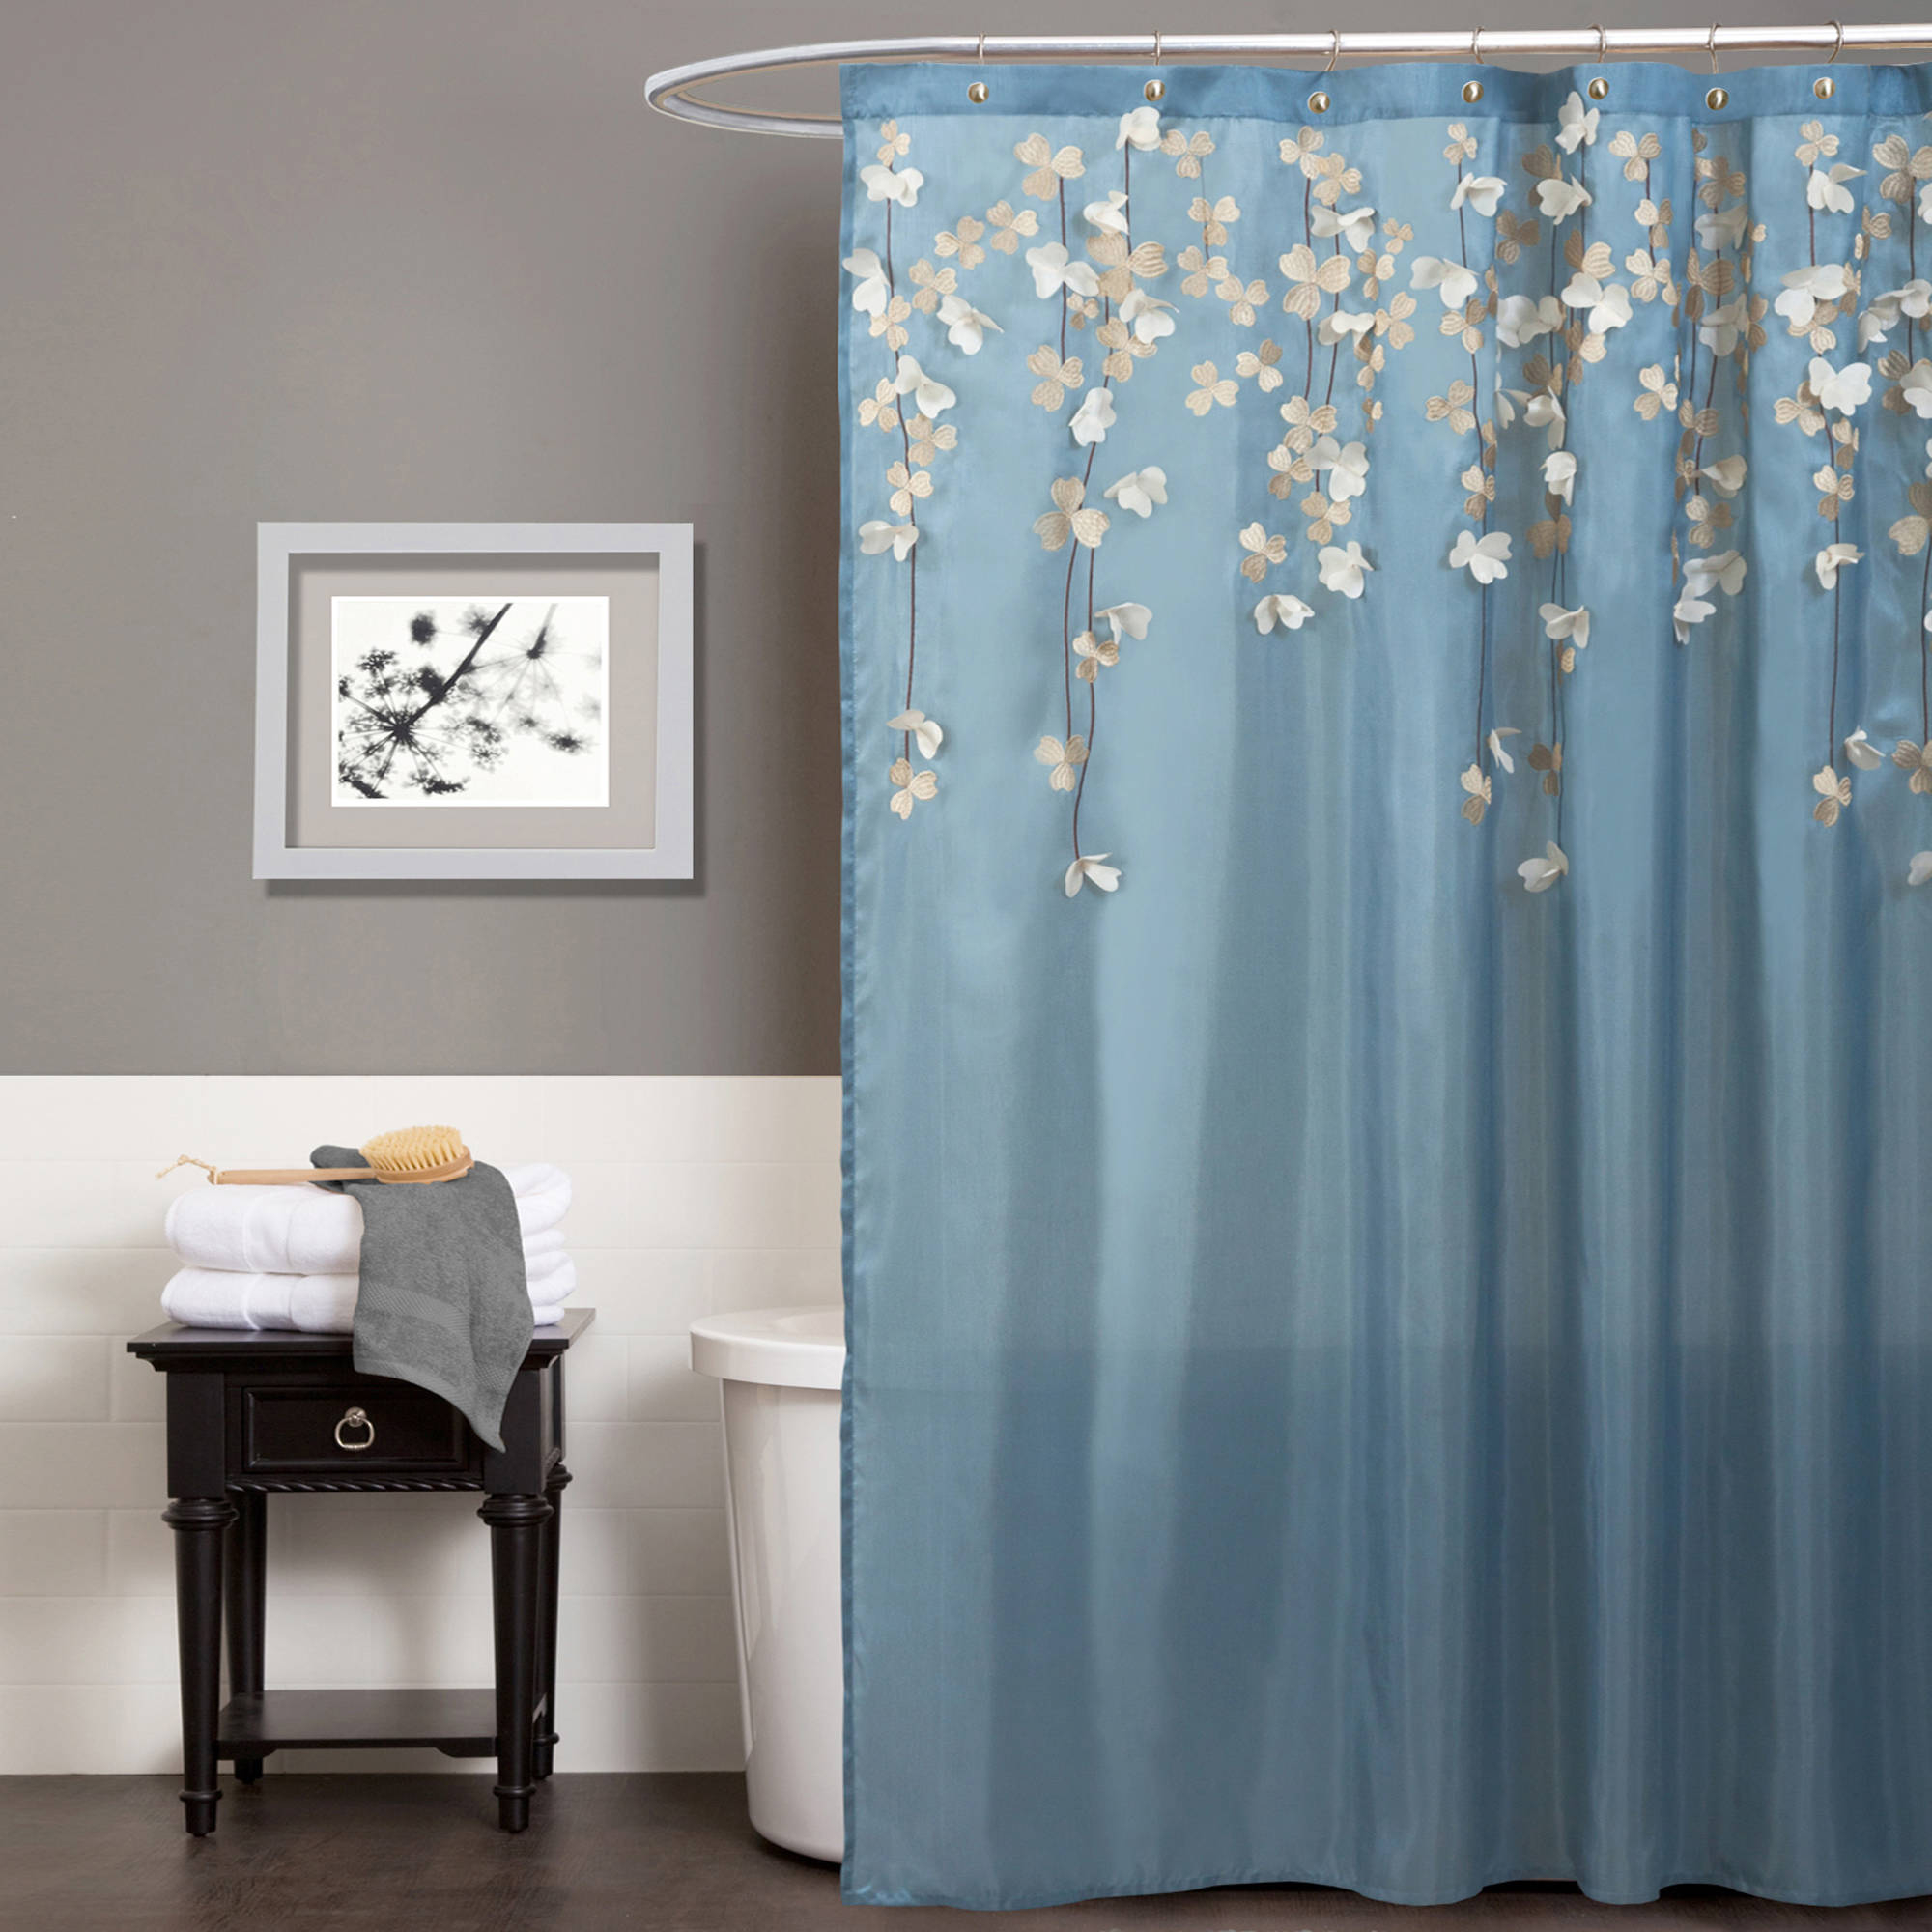 Shower Curtains Walmart within proportions 2000 X 2000